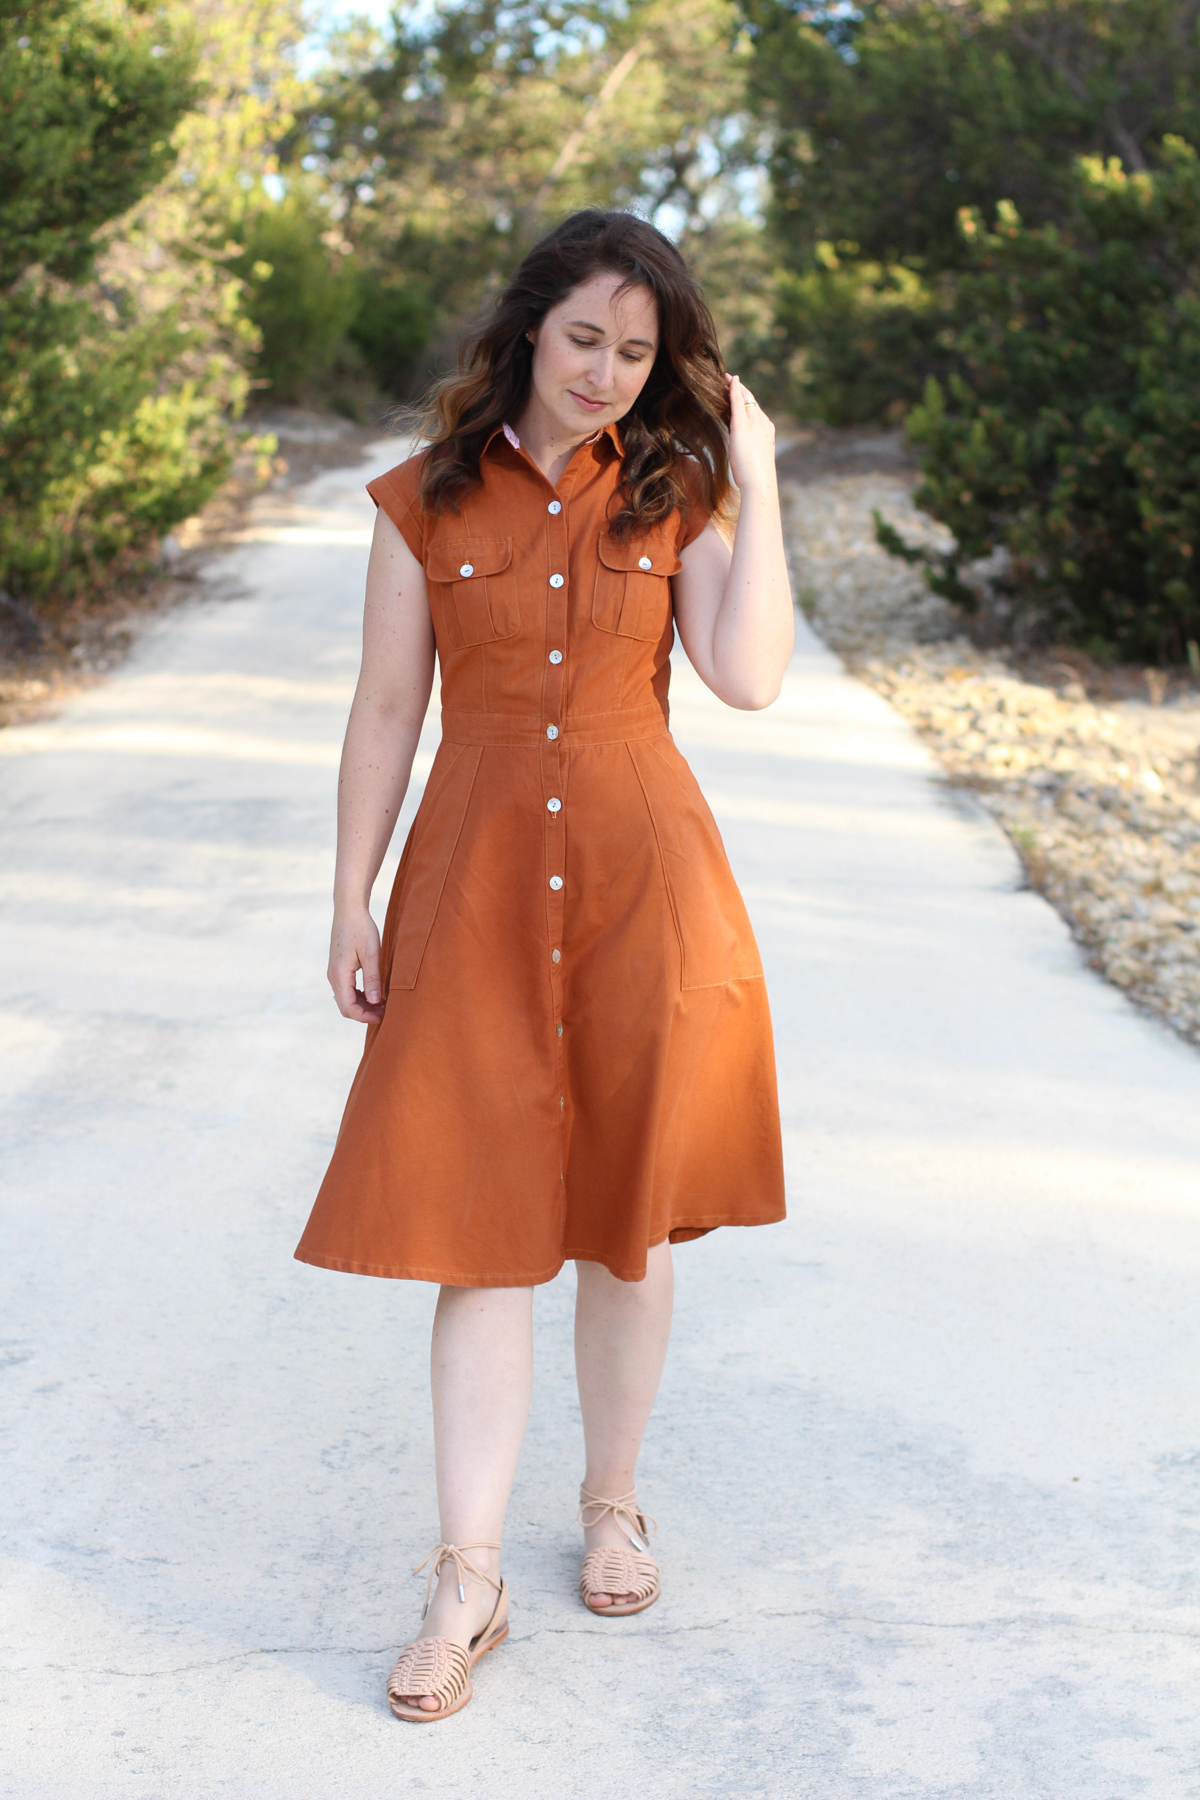 Megan Nielsen Matilda dress in Rust brushed cotton // The buttonhole below the waistband was sliced through and damaged and has been fixed with a narrow zig zag stitch in same colour thread as fabric